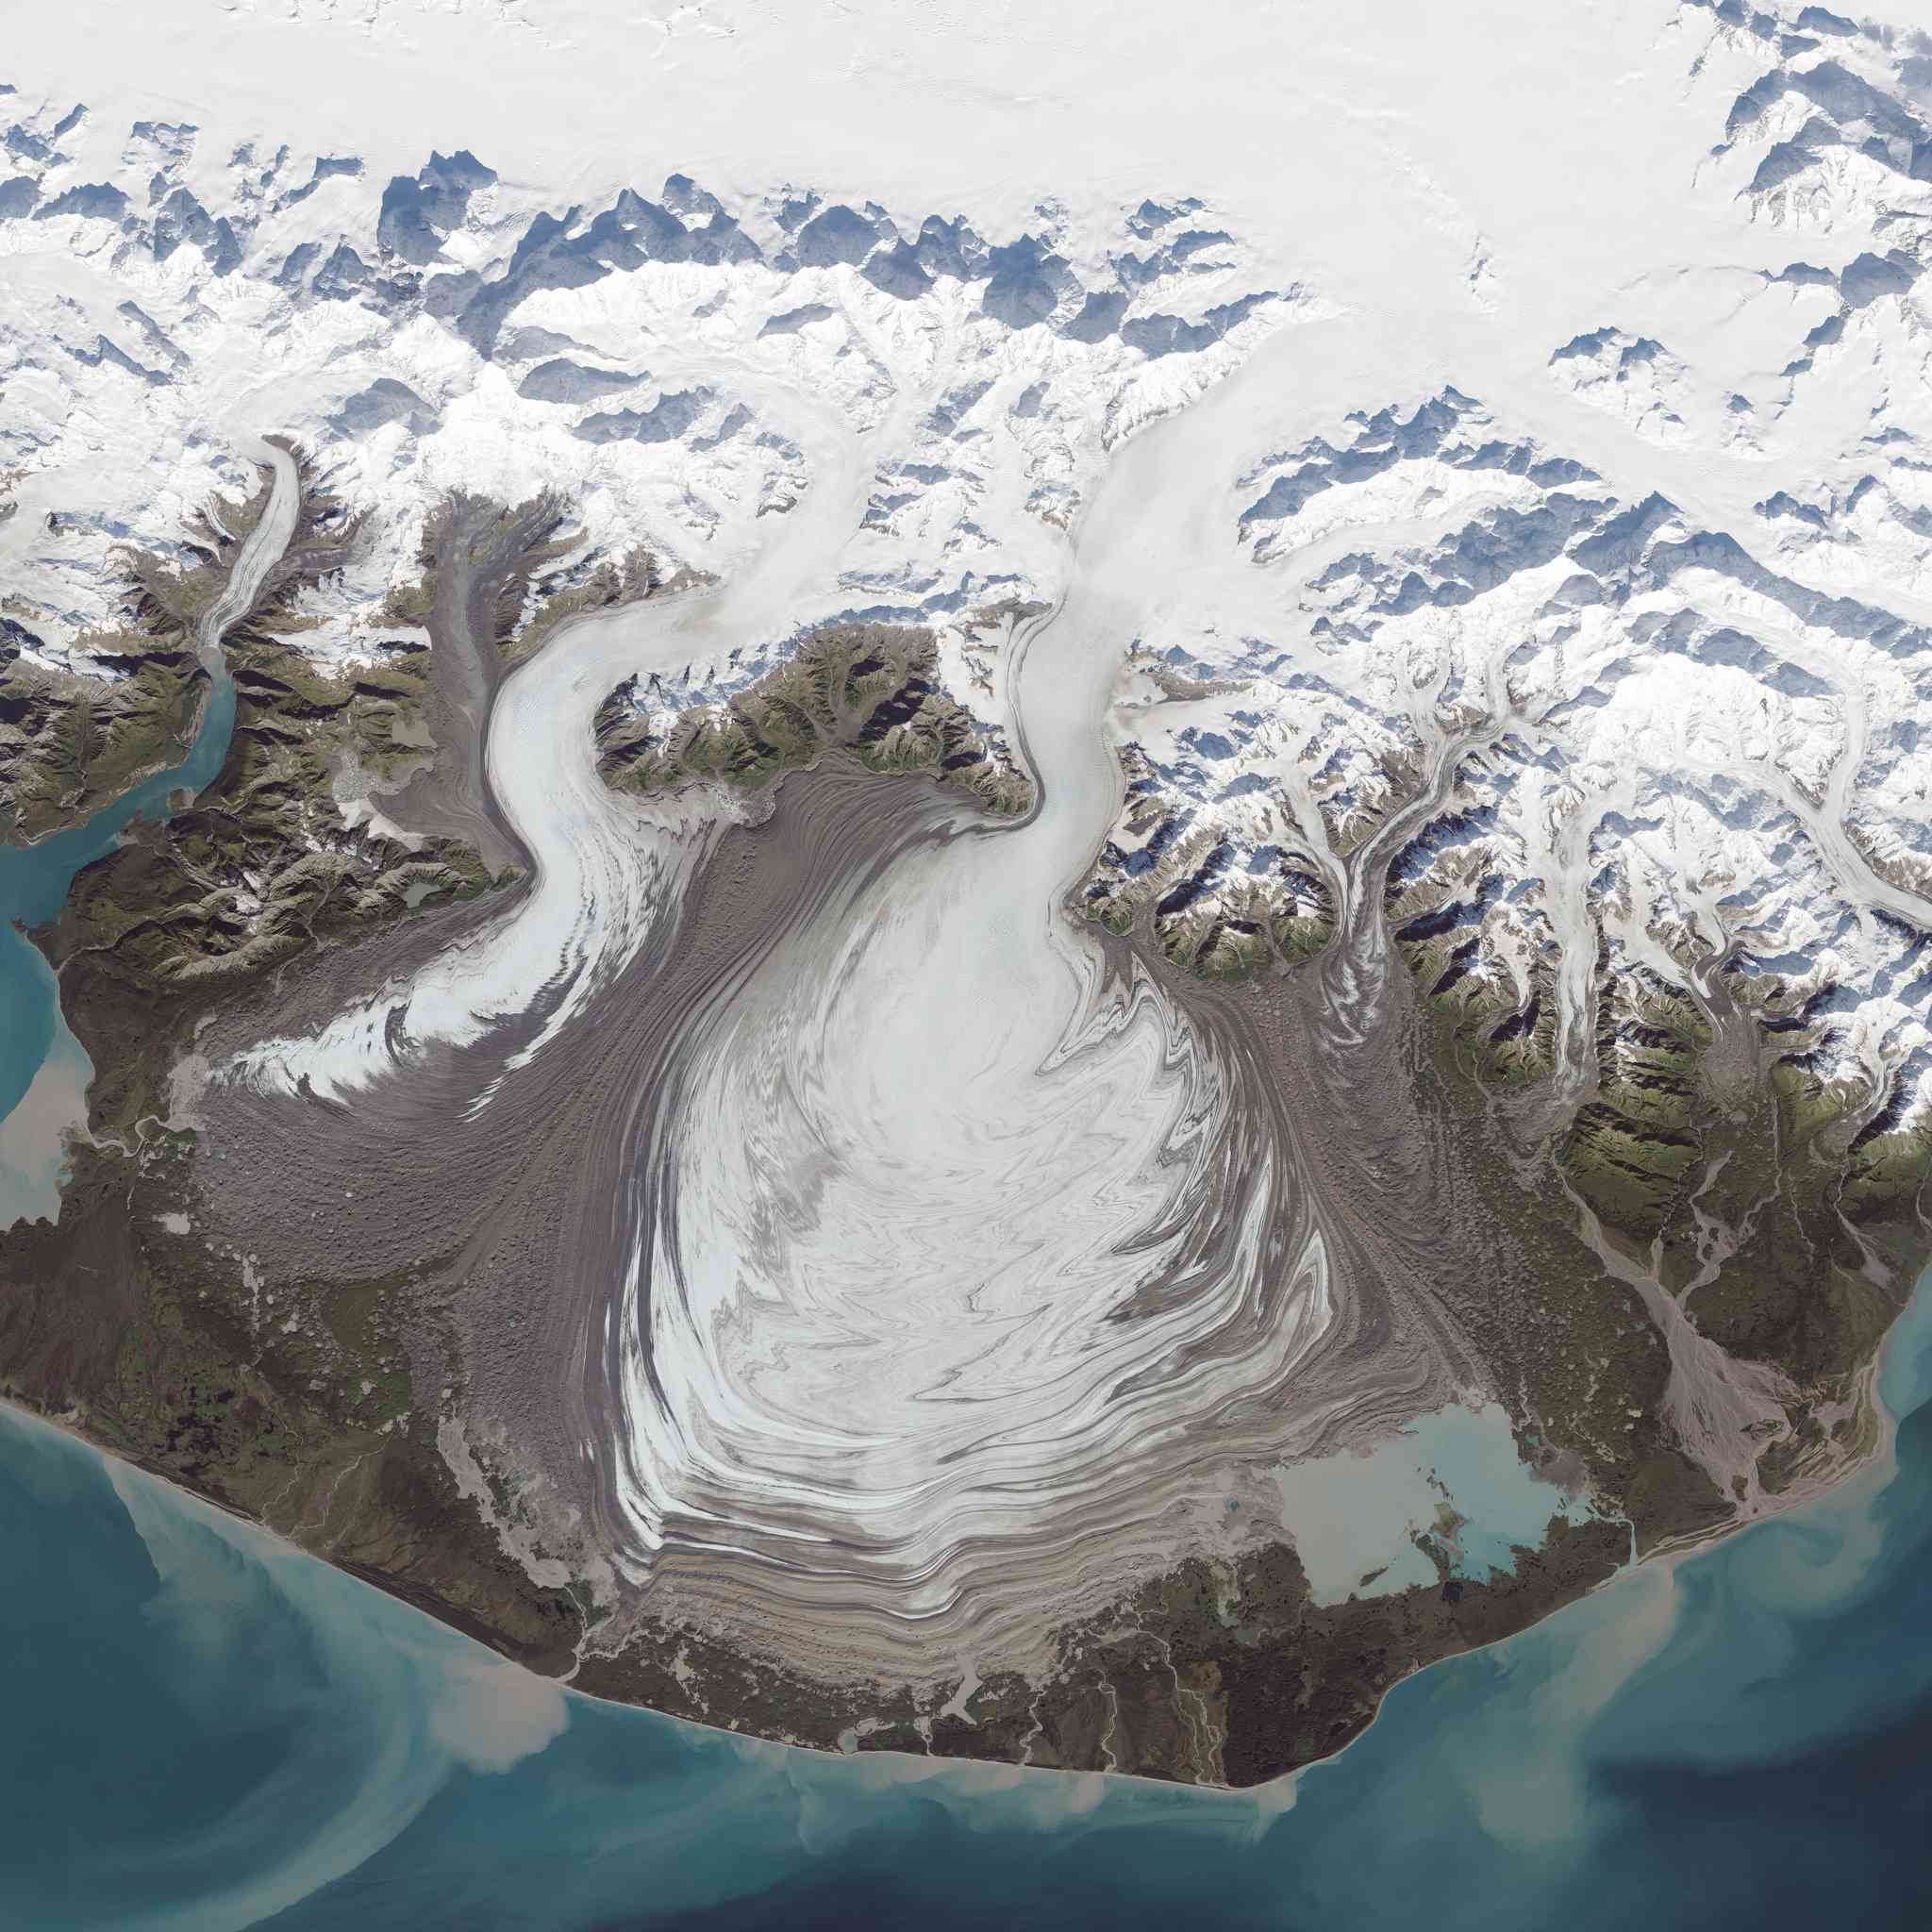 A piedmont glacier is one that spreads out into a wide